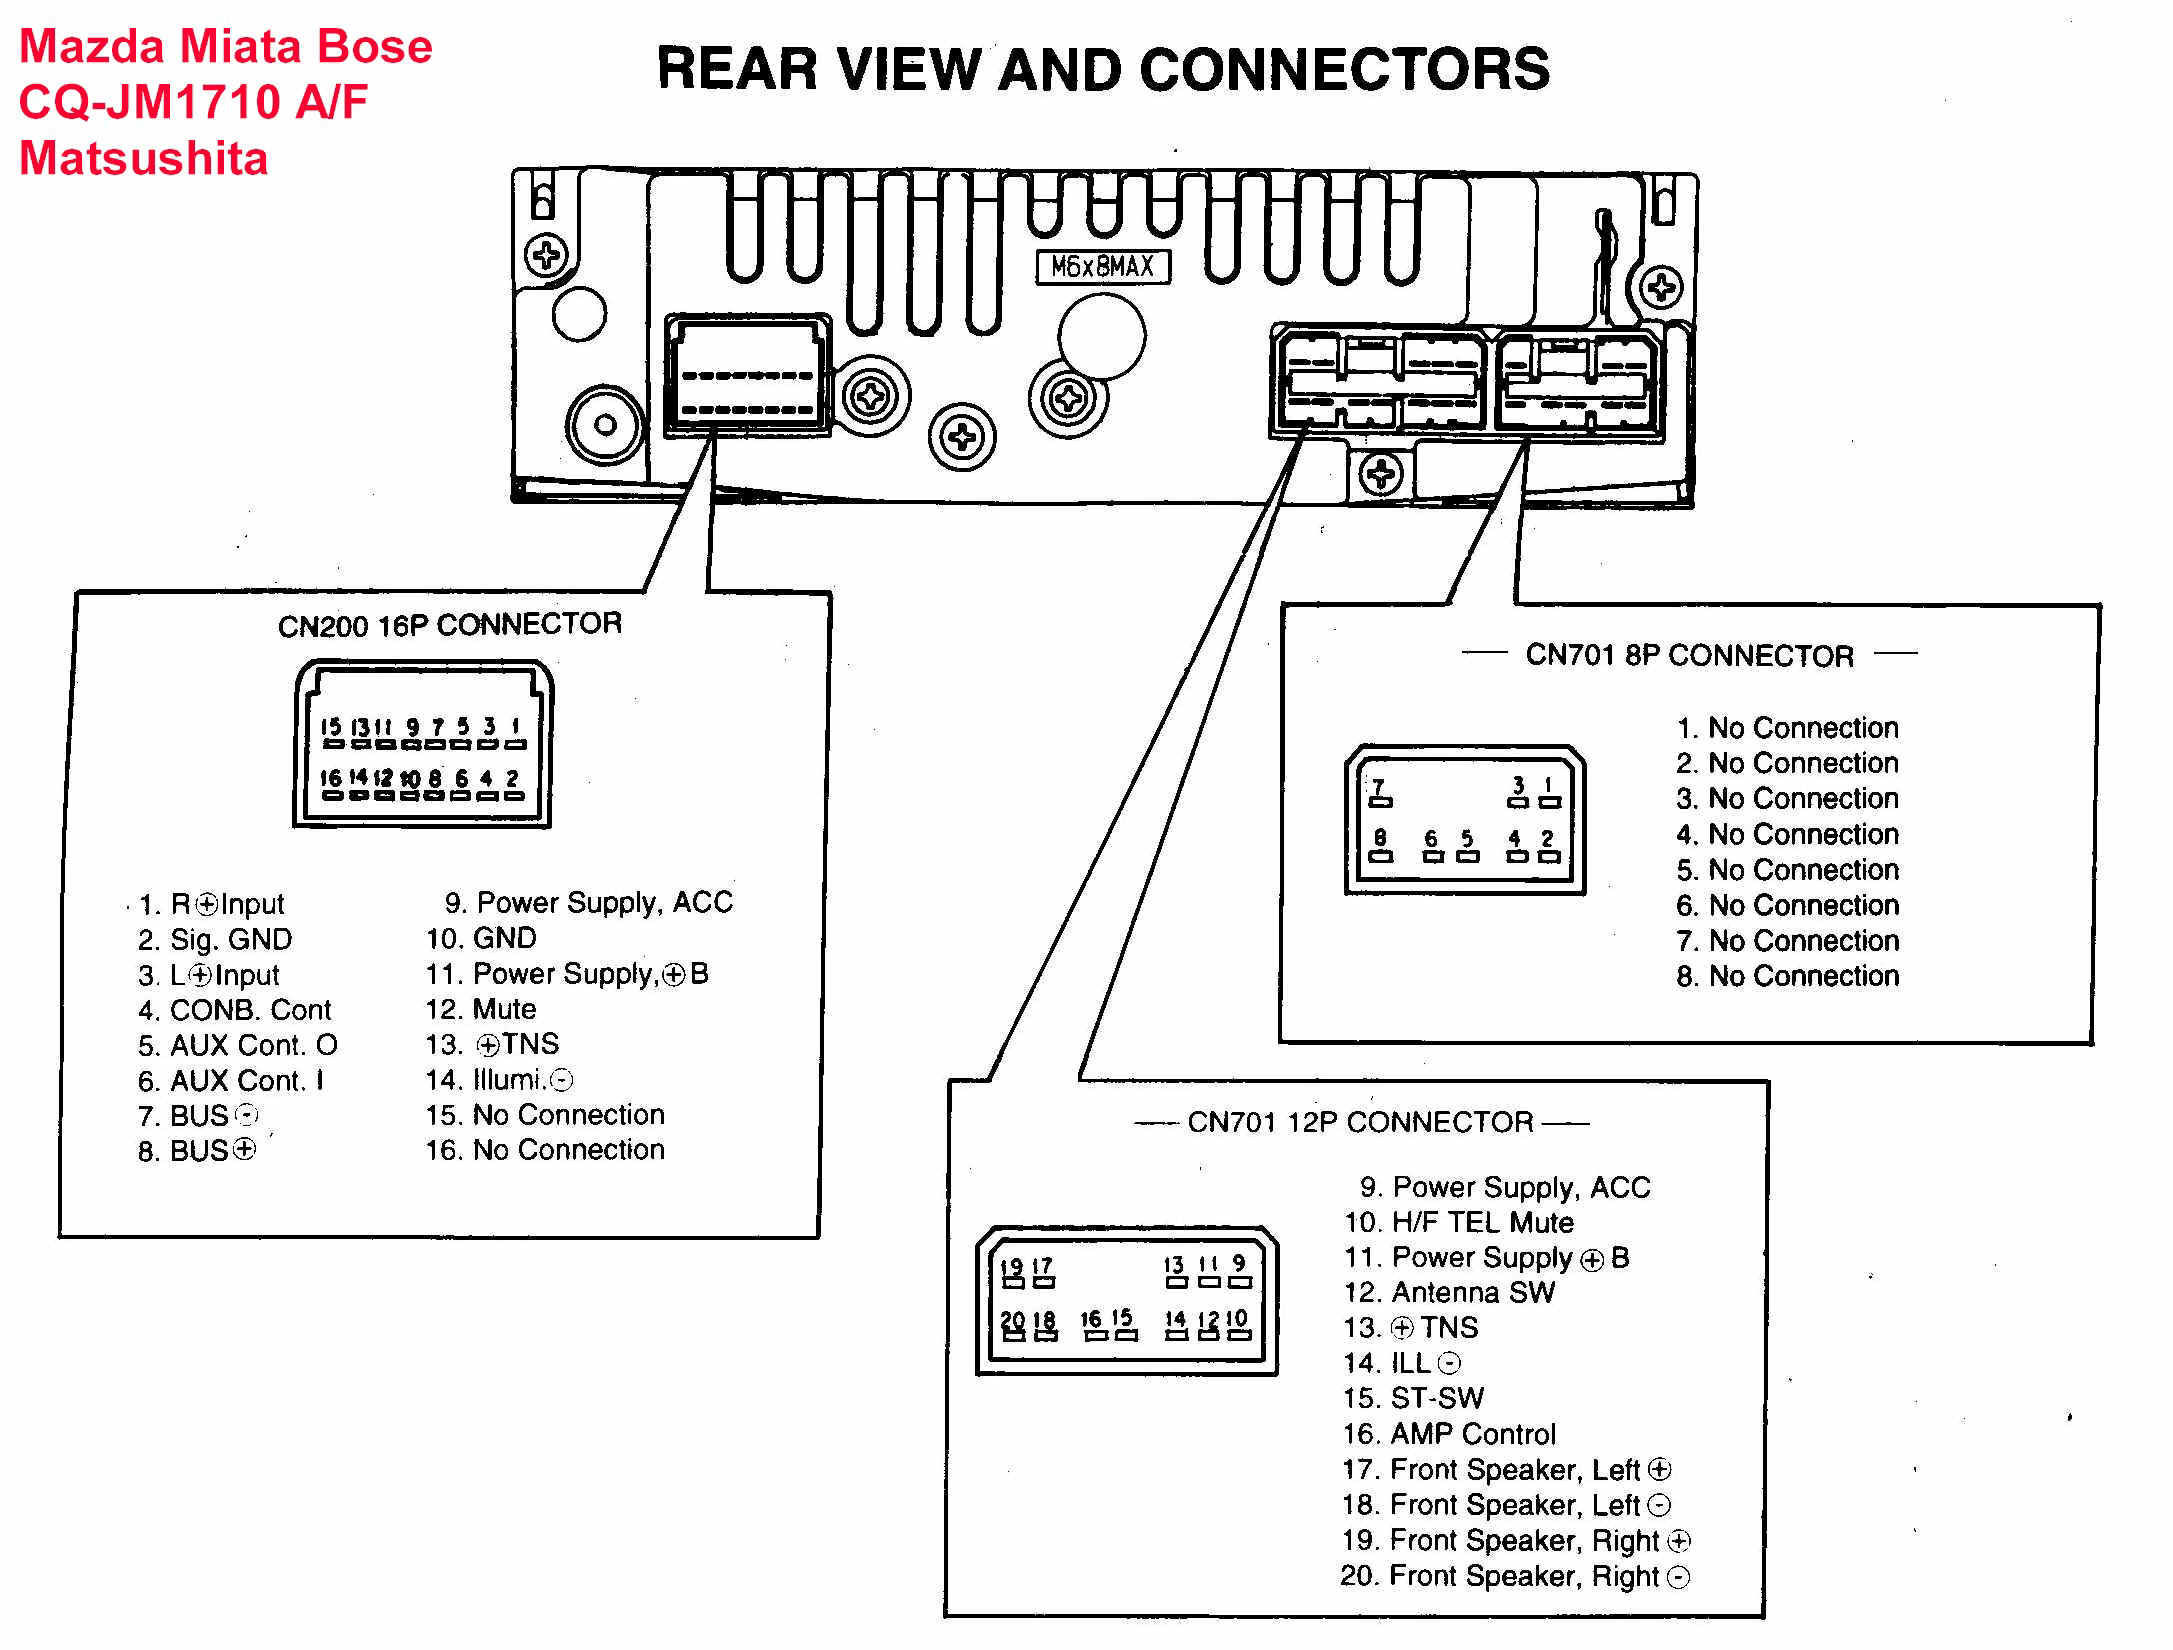 04 altima ac fan relay wiring diagram with Wireharness Mazda2 on 2002 Chevrolet Silverado also 1988 Chevy S10 Instrument Cluster likewise Coolingsystem New further Wireharness Mazda2 moreover RepairGuideContent.